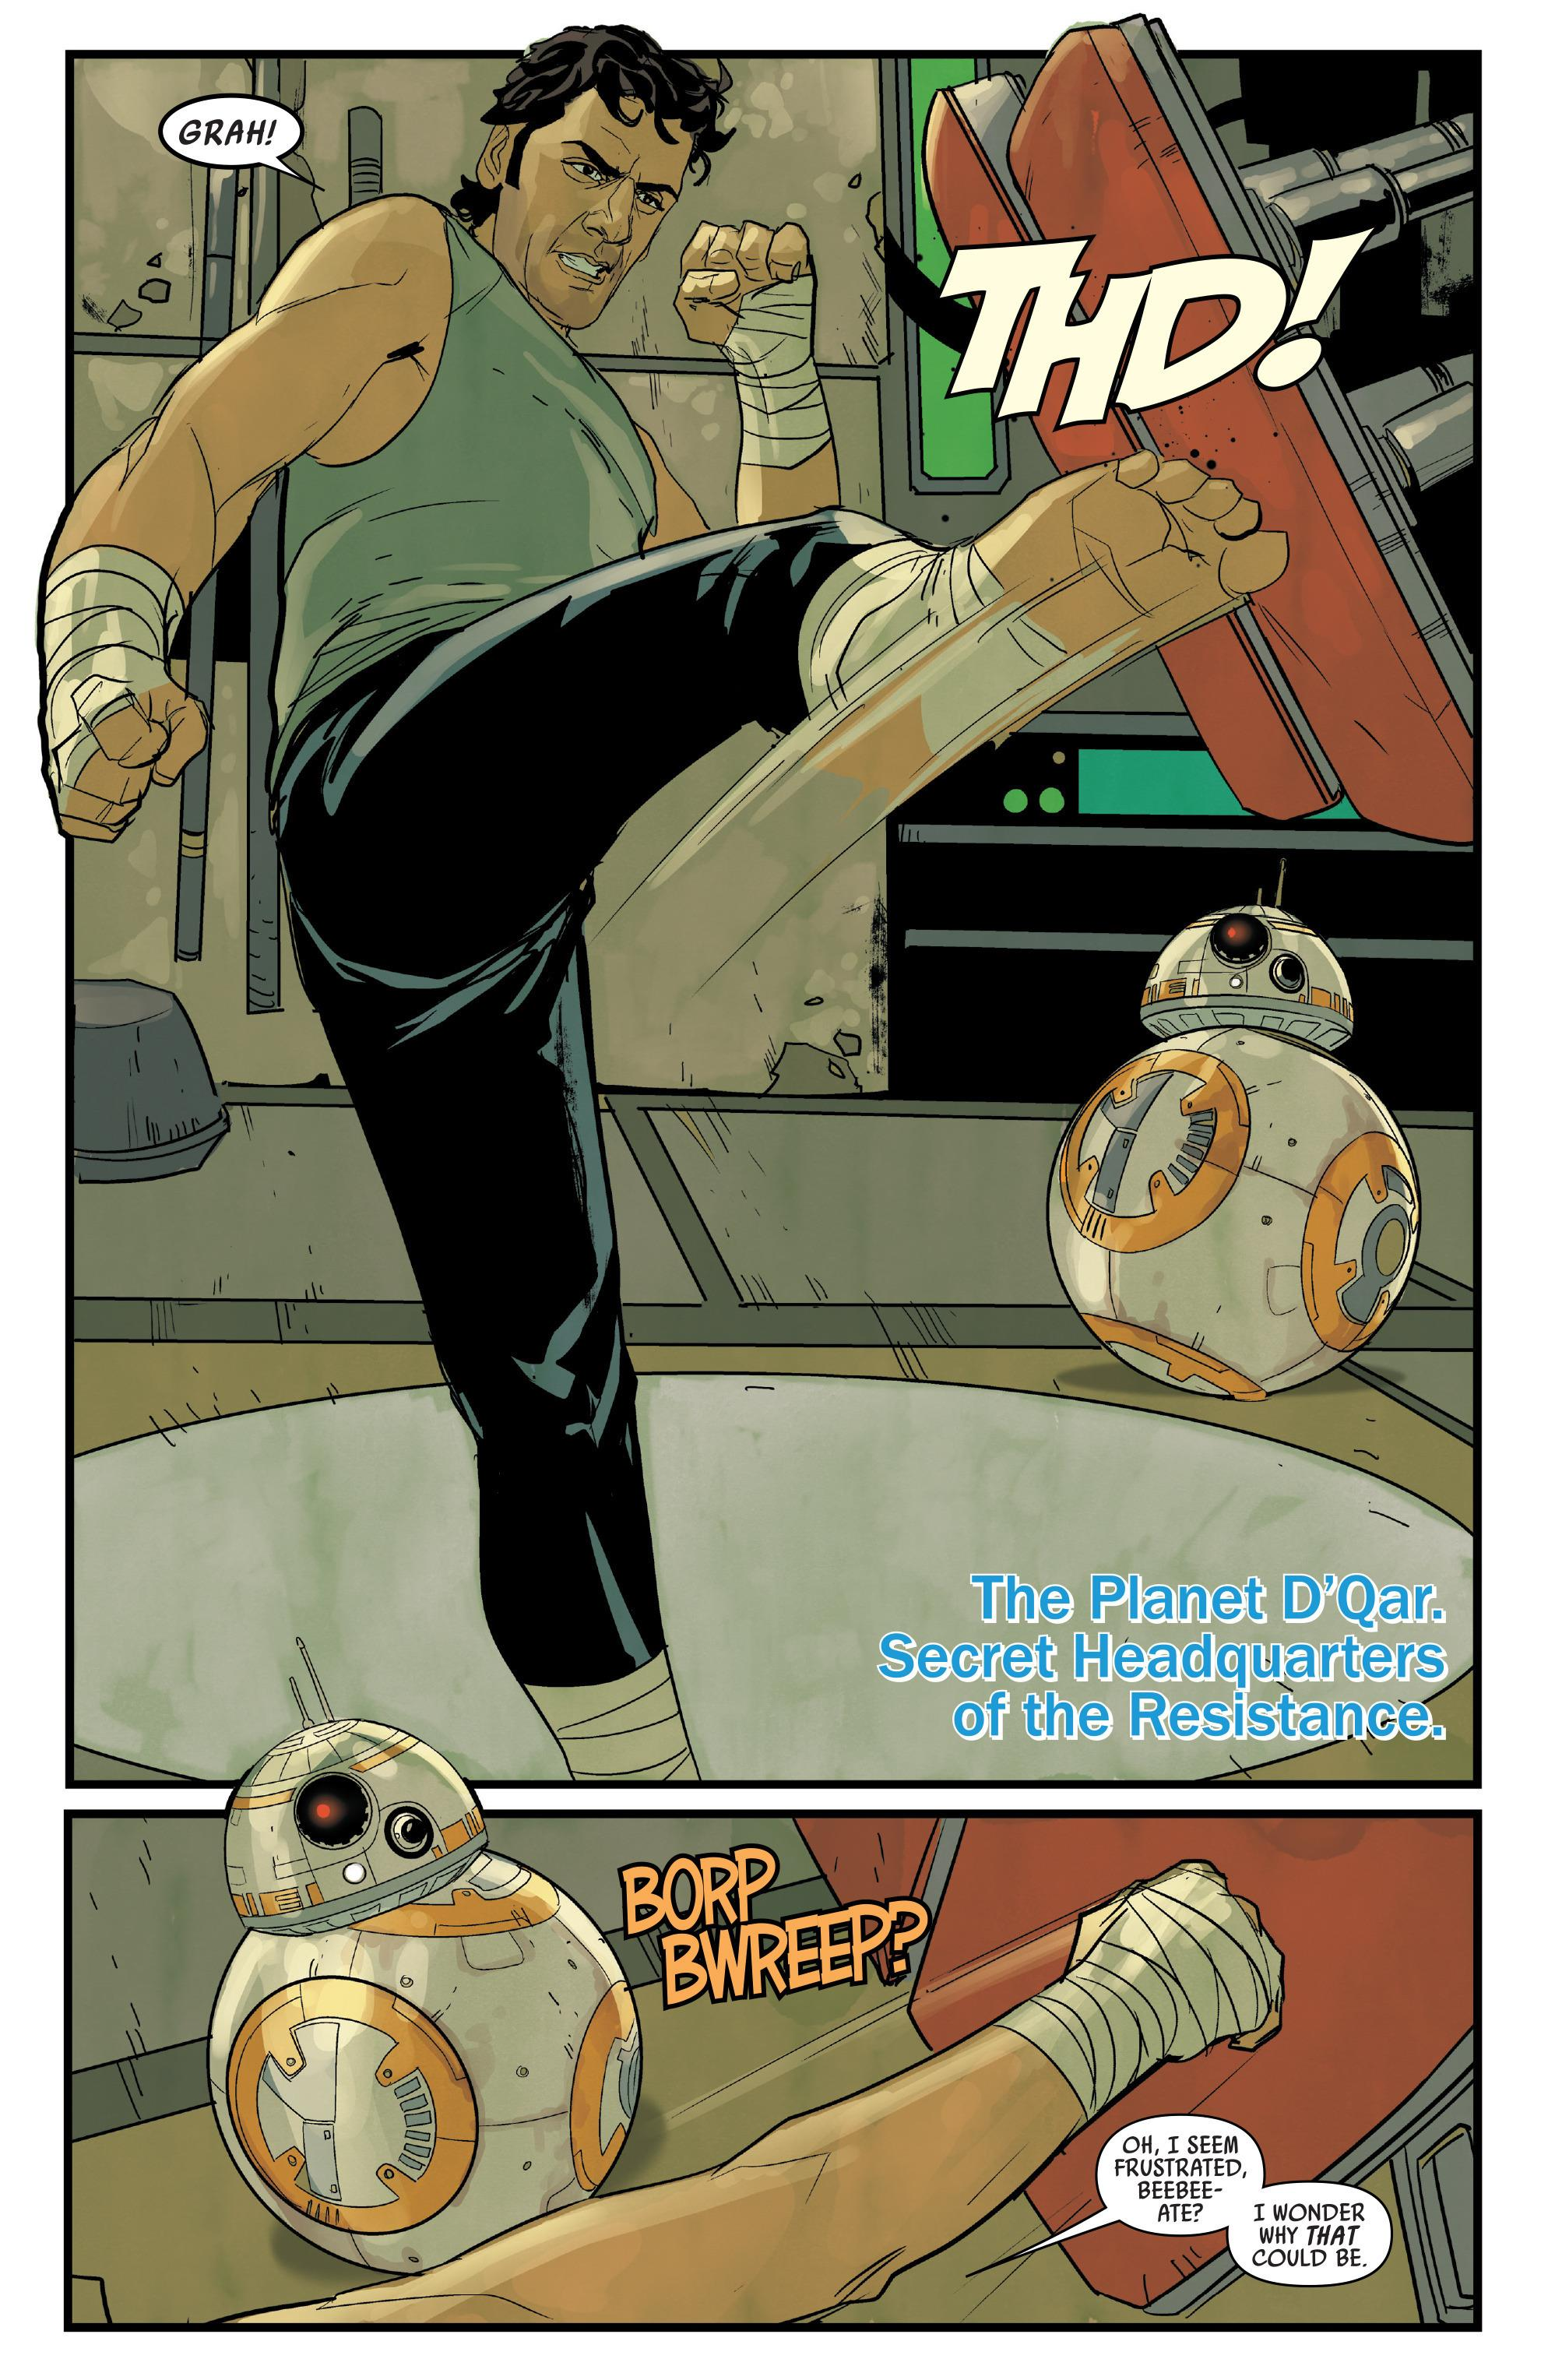 Star Wars: Poe Dameron Vol. 2 The Gathering Storm Review